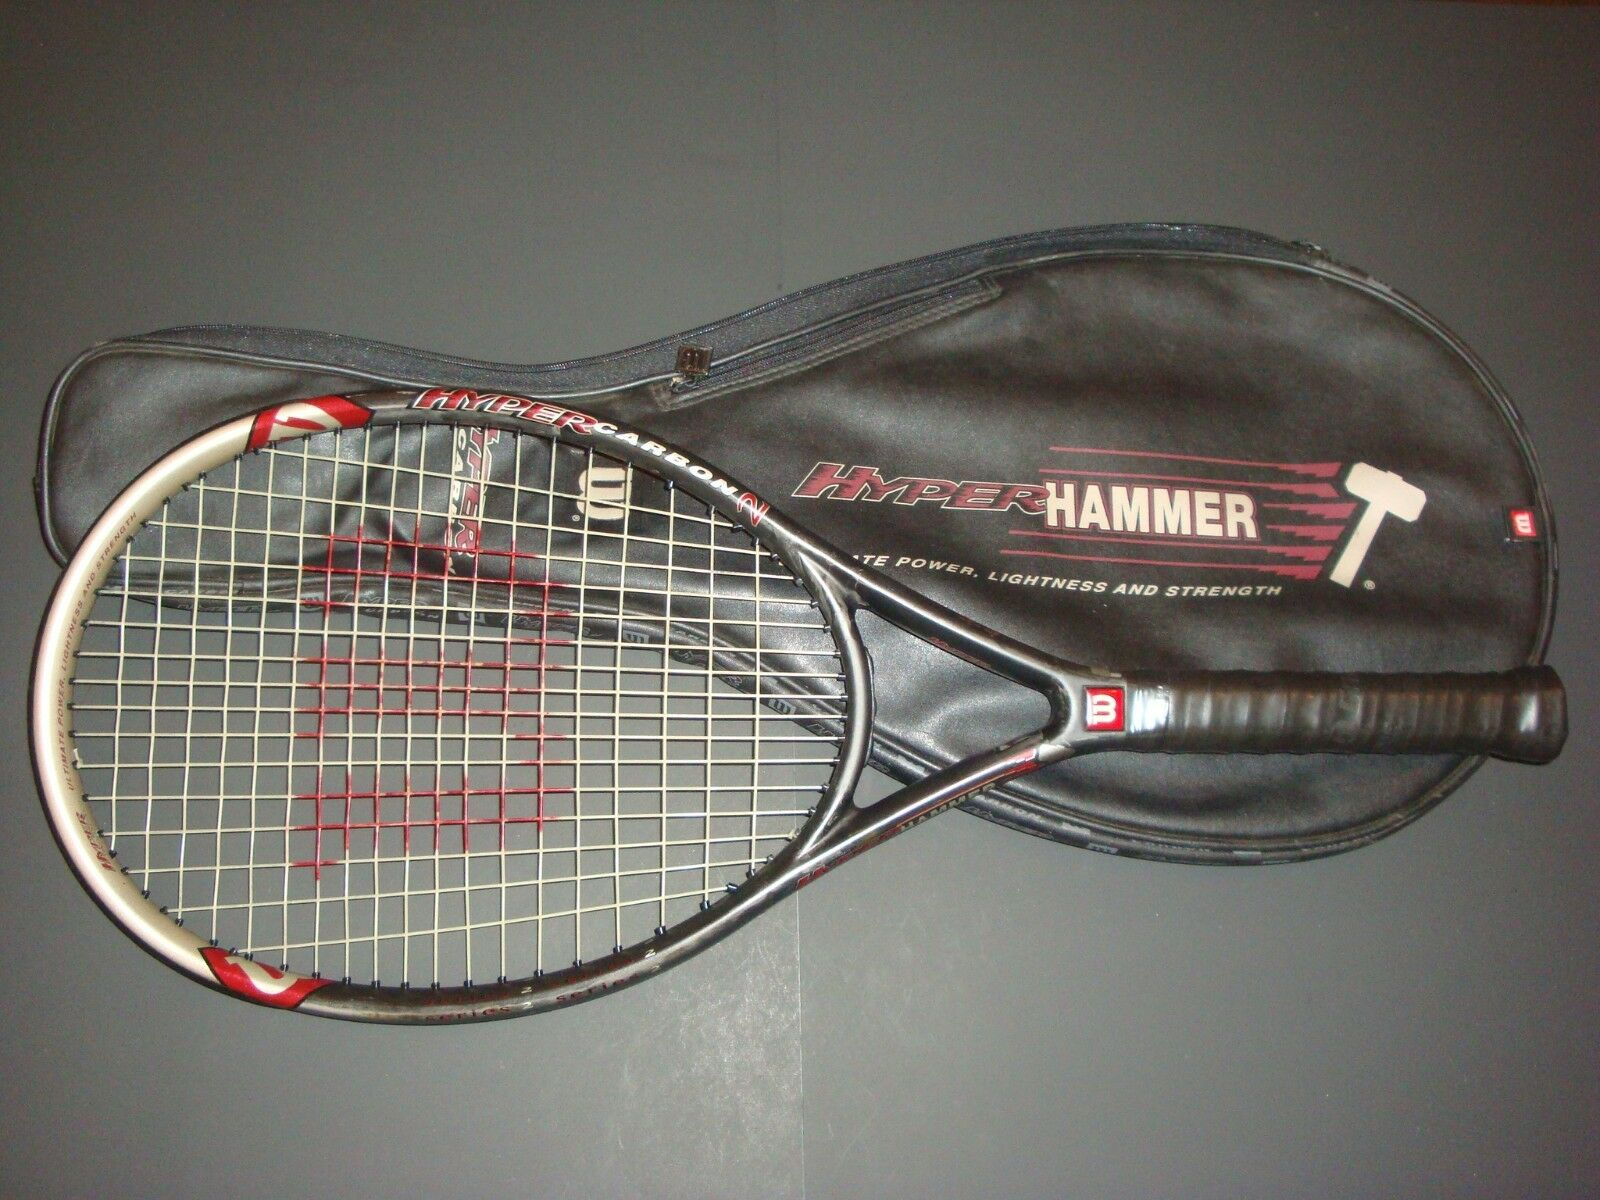 Wilson Hyper Hammer Hh 3.3,115      overTalla,4-1   2, + Tapa,  new-other  {Inv   400139}  grandes ahorros